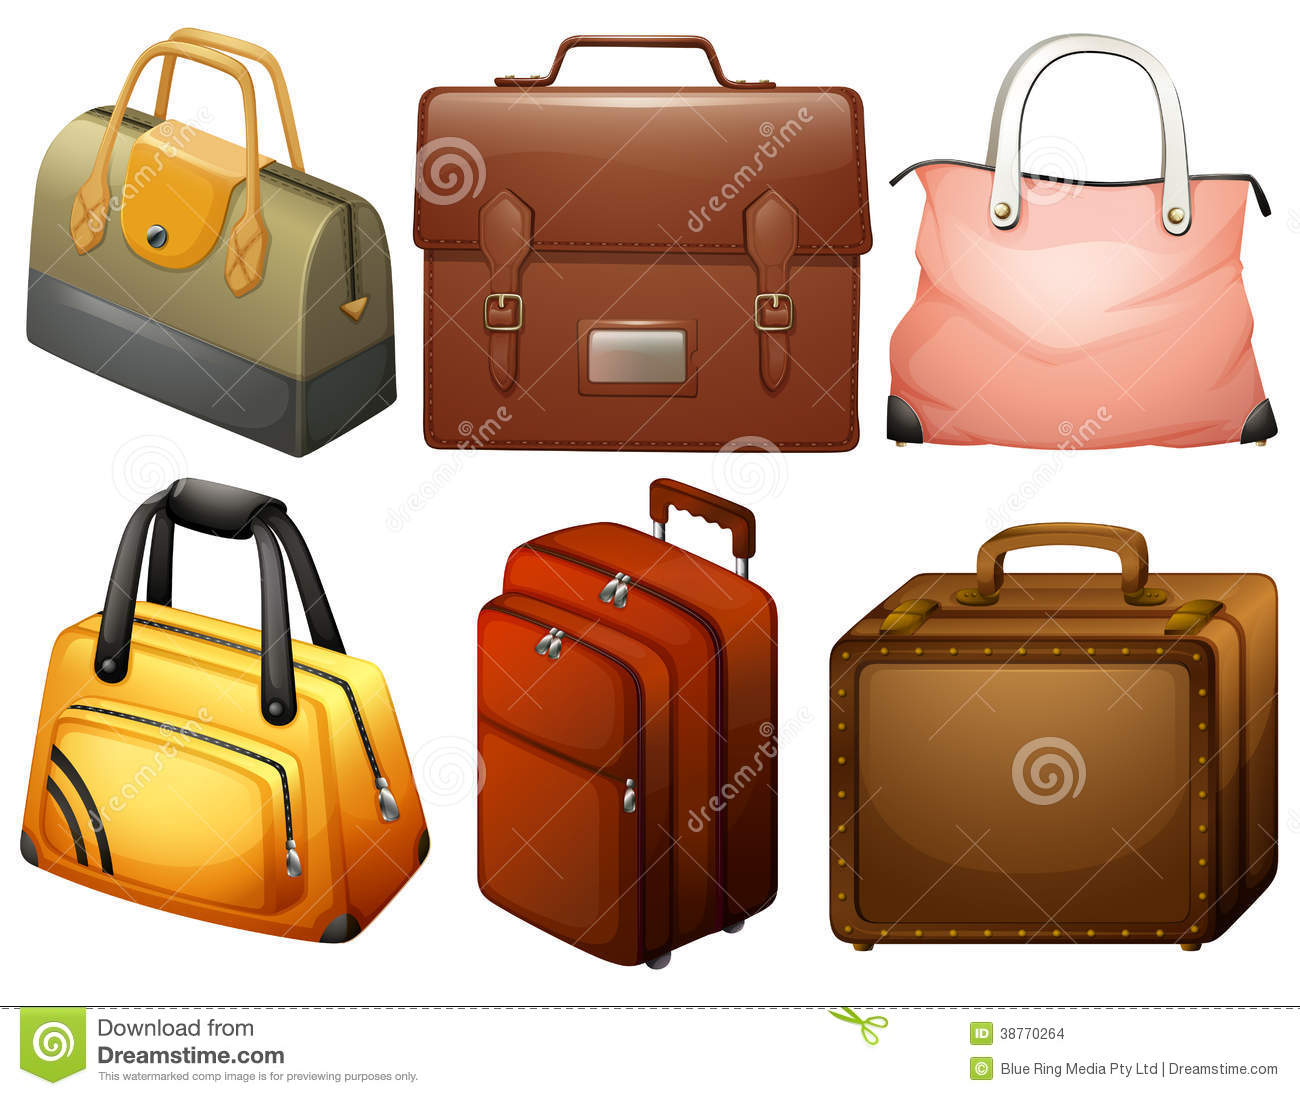 Different Types Of Bags Stock Images - Image: 38770264